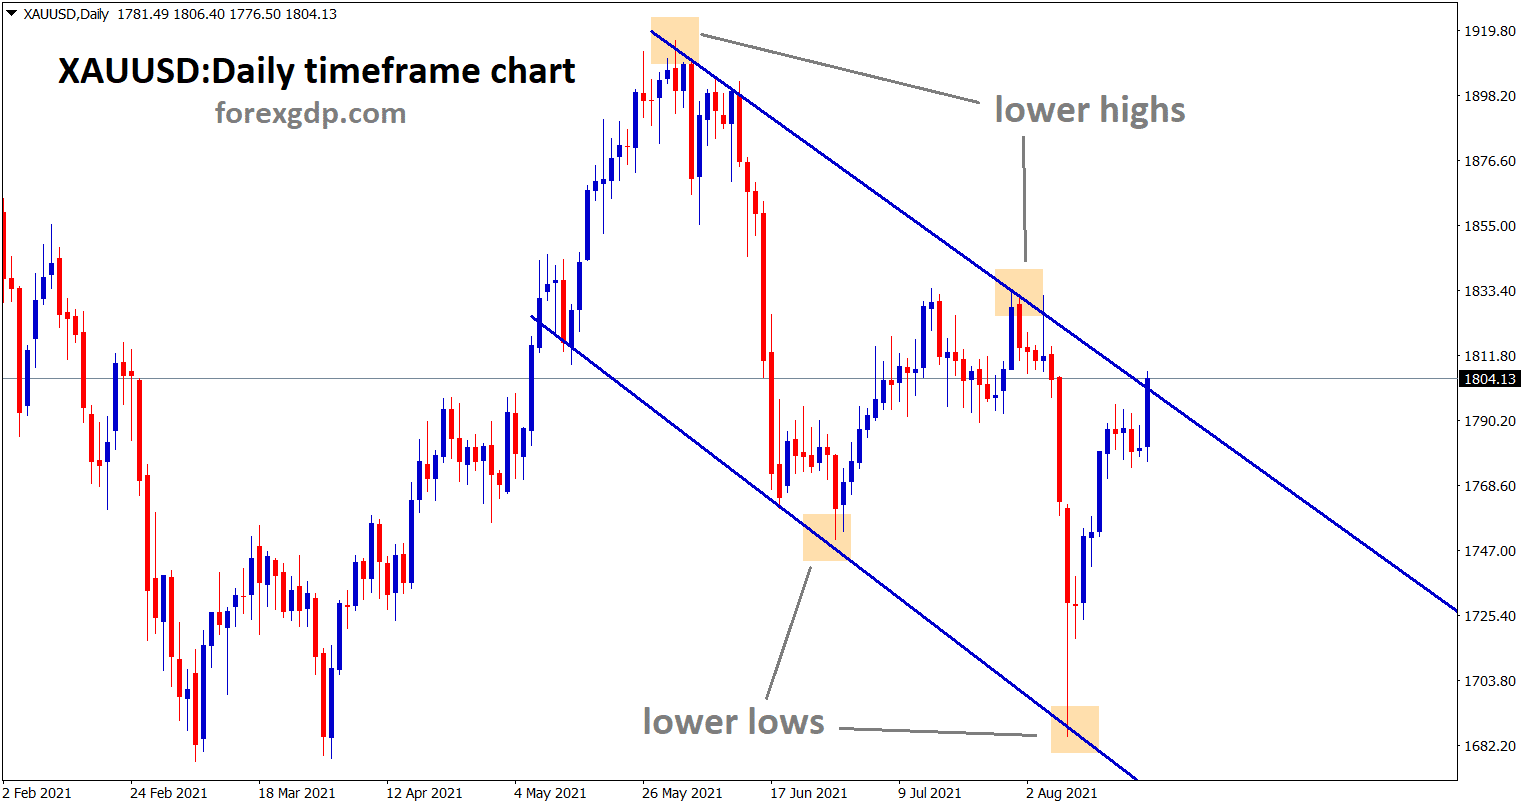 Gold XAUUSD hits lower high area of the descending channel wait for the confirmation of reversal or strong breakout.